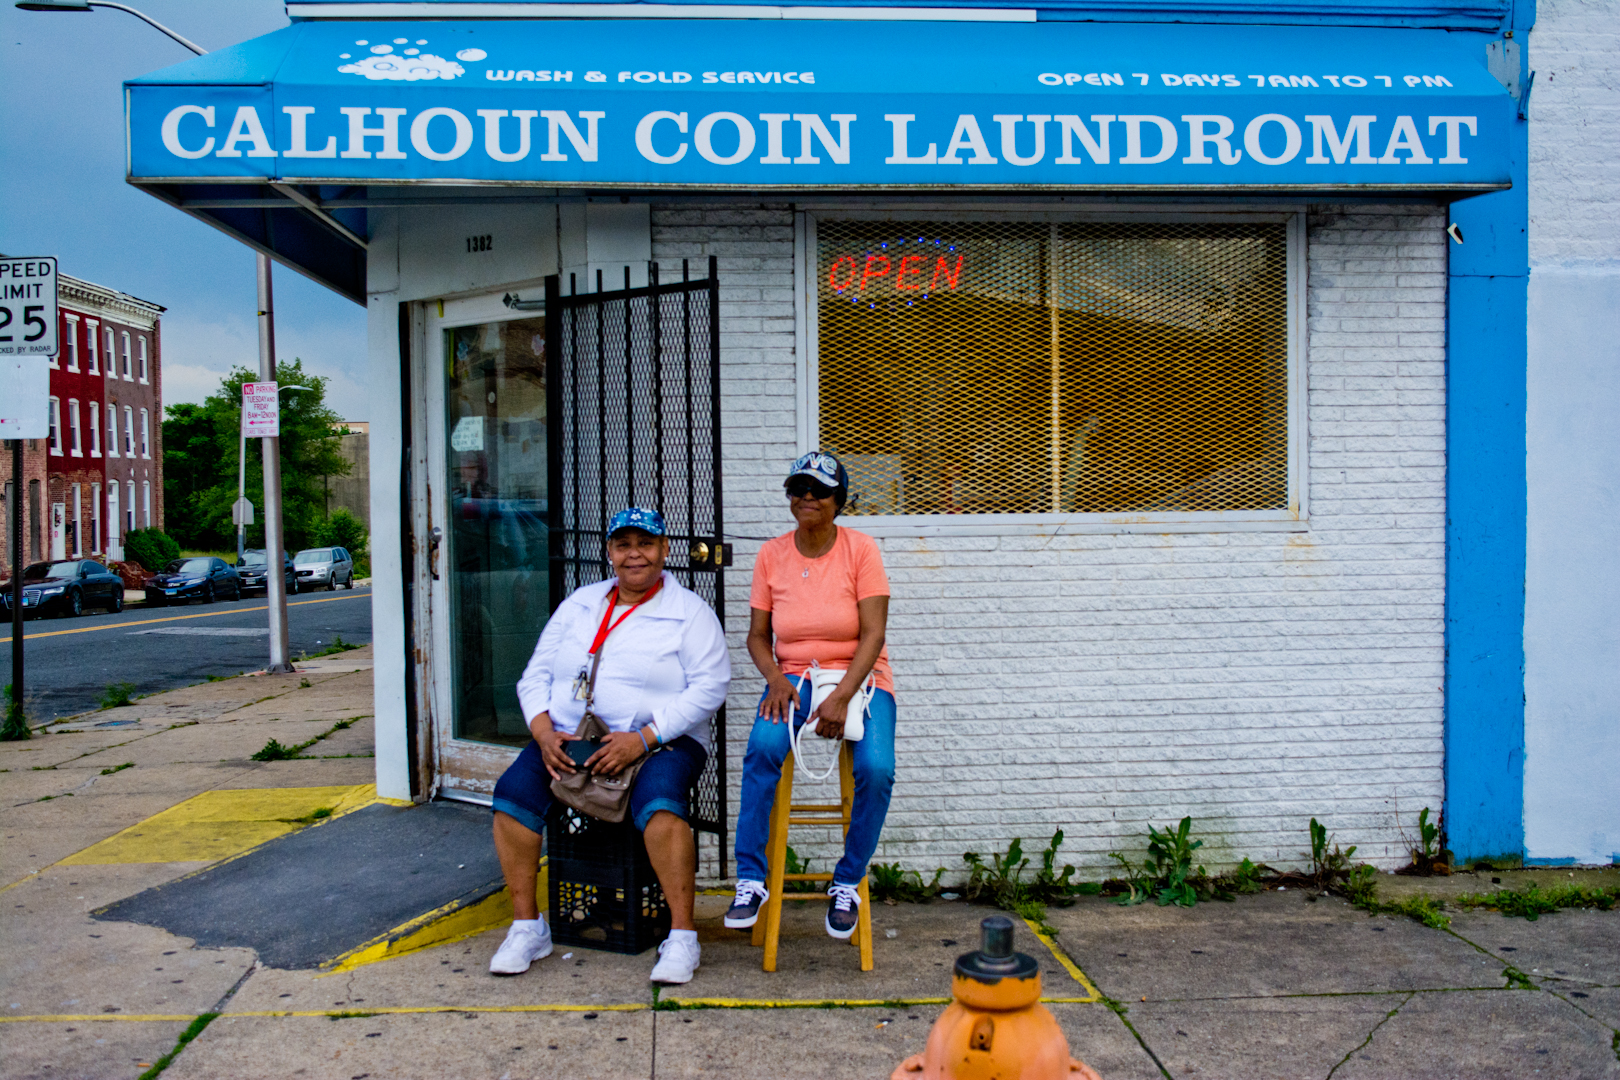 """Talk about the neighborhood!  Oh no! Let's not talk about that!  *laughter*  I've been working at this laundromat for eight years. We have specials Wednesdays and Fridays. We're called the Calhoun Coin Girls. Open seven days a week."""